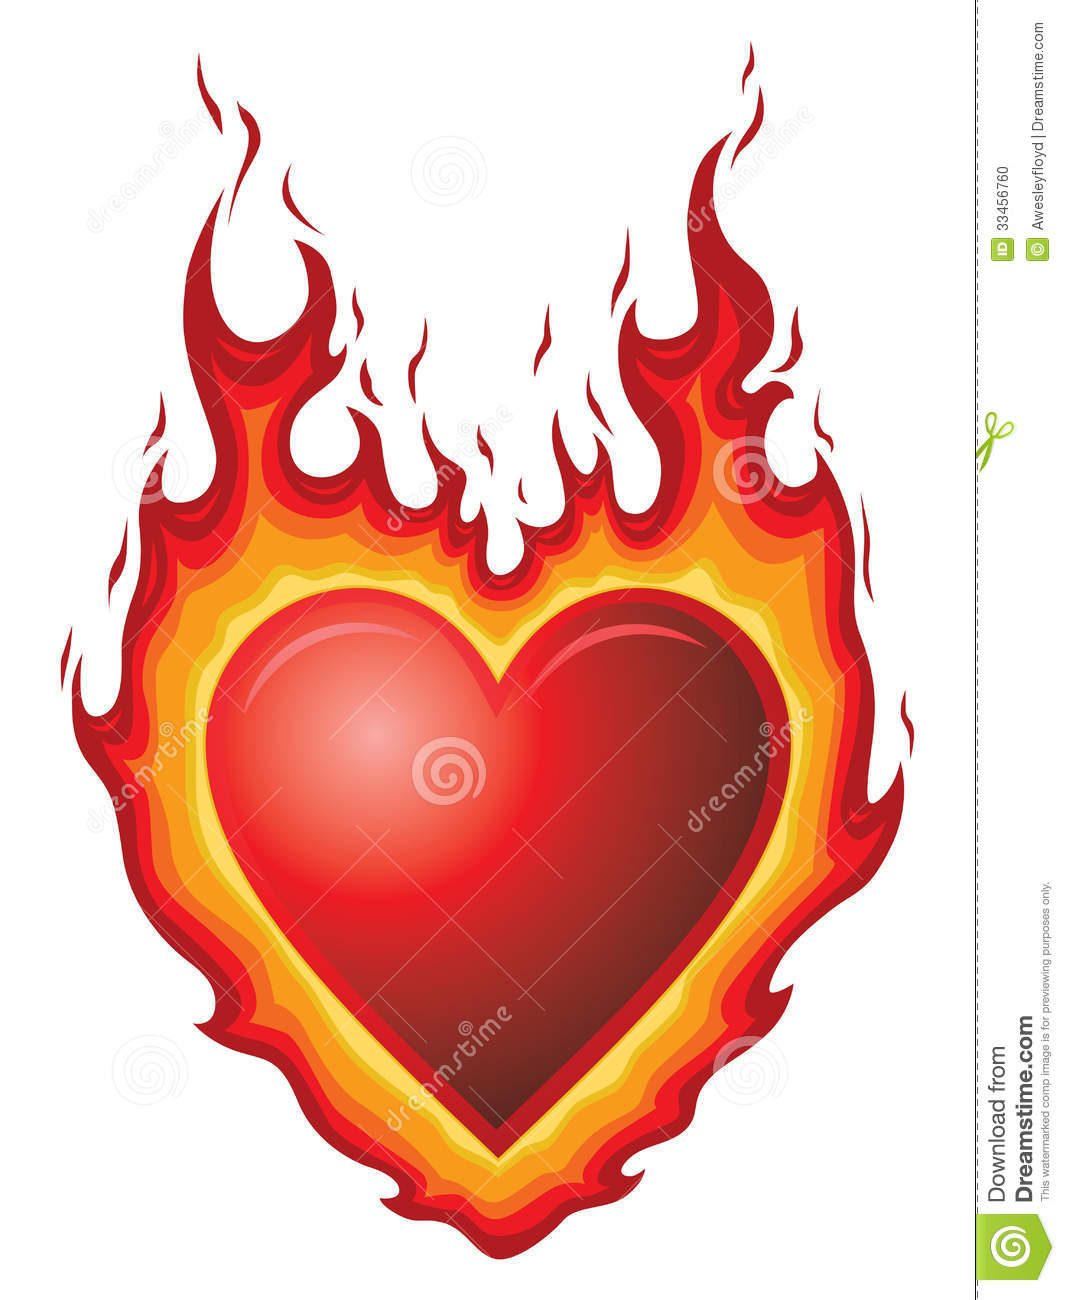 Heart Burn Stock Photo.